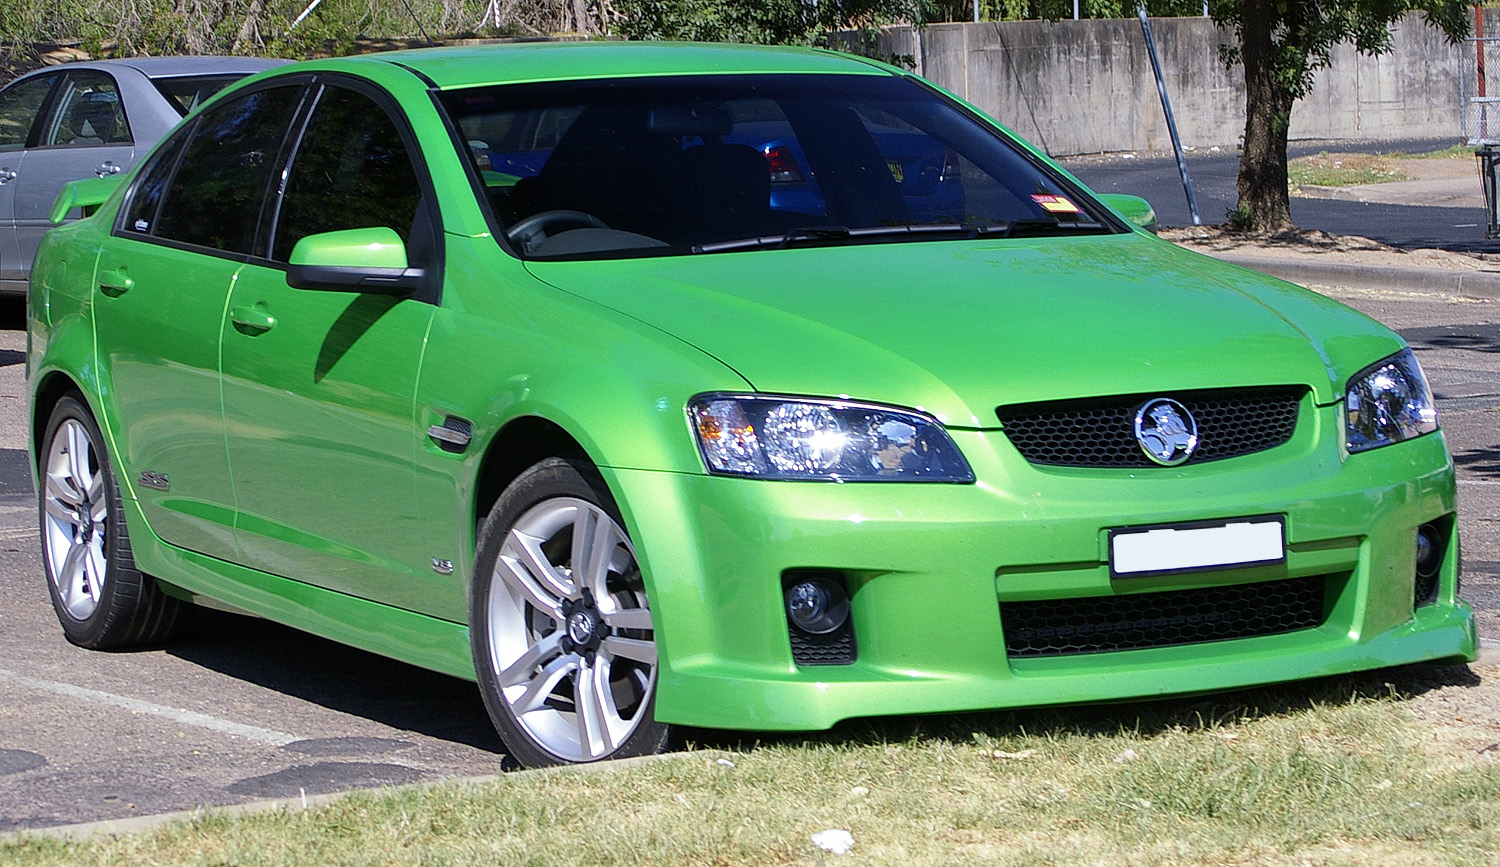 file2008 commodore ss v8jpg wikimedia commons